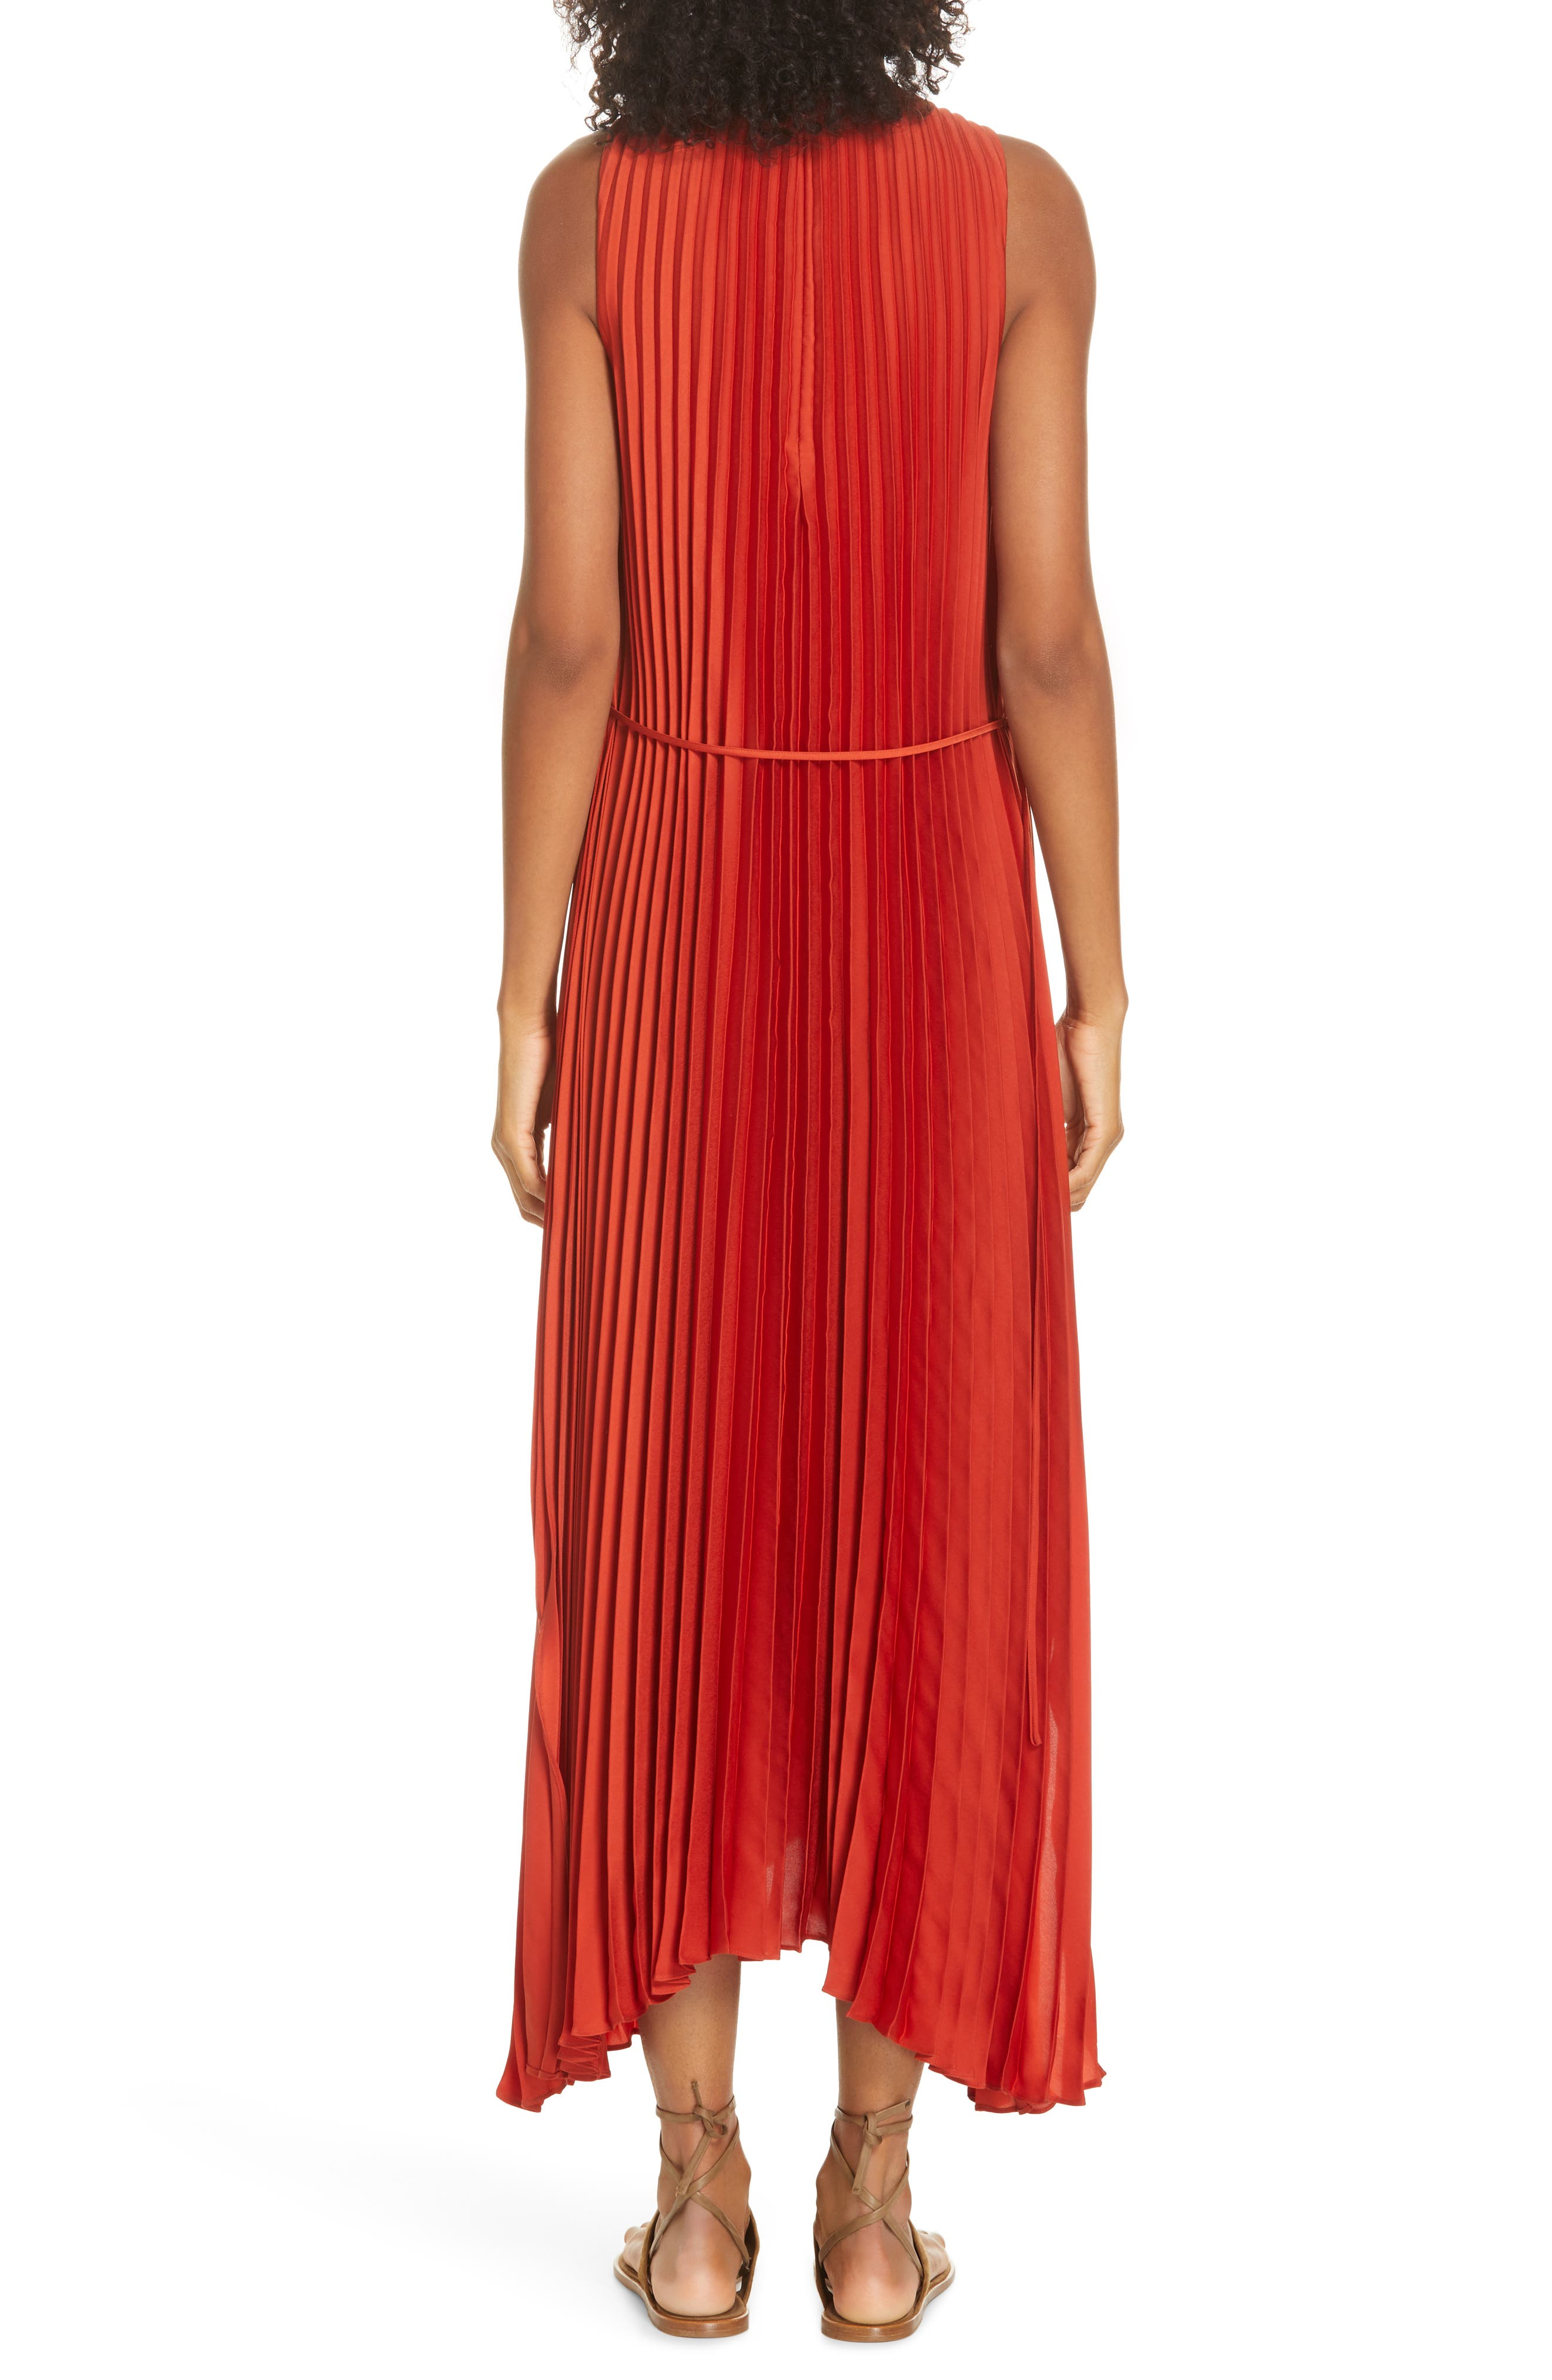 VINCE, Smocked Maxi Dress, Alternate thumbnail 2, color, ADOBE RED